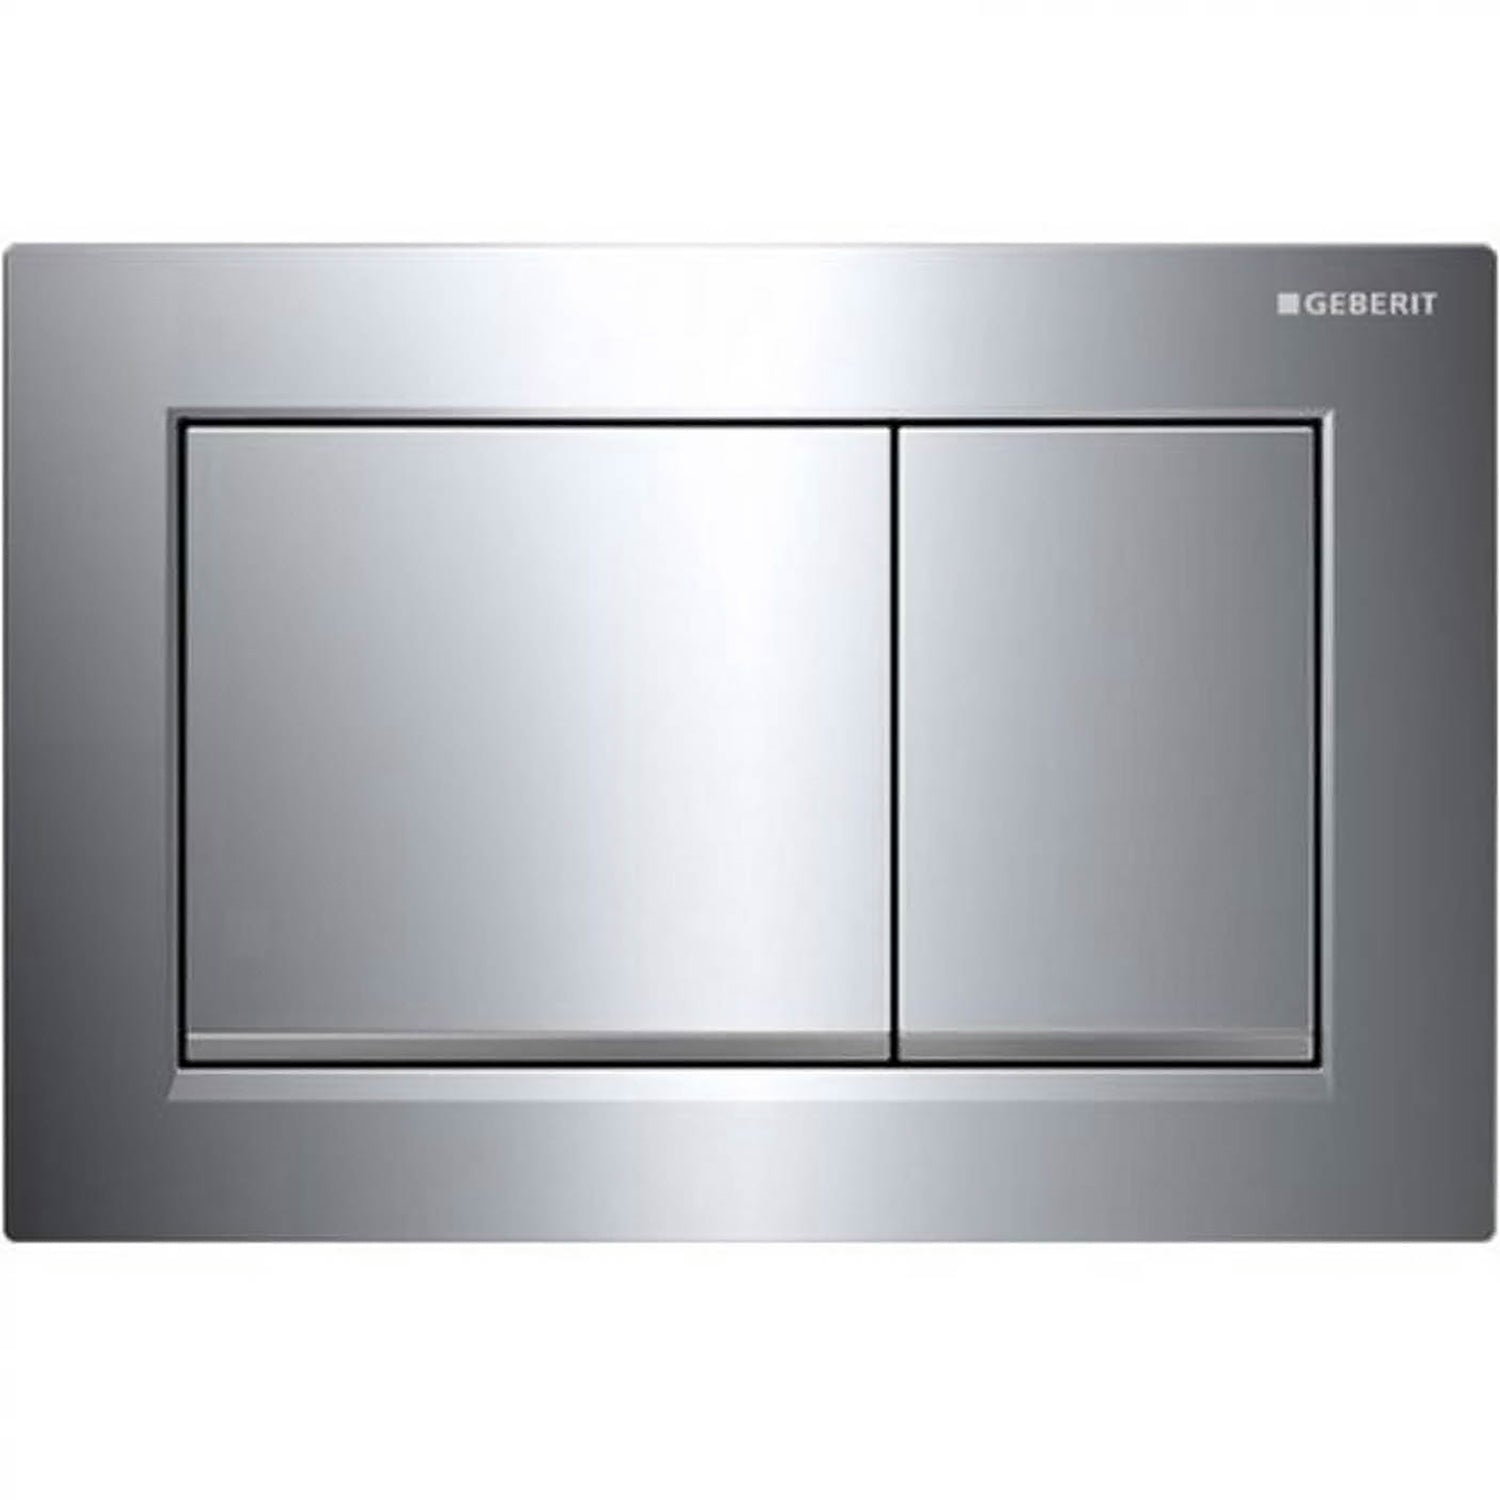 Omega Rectangular Dual Action Flush Plate with a gloss chrome finish on a white background